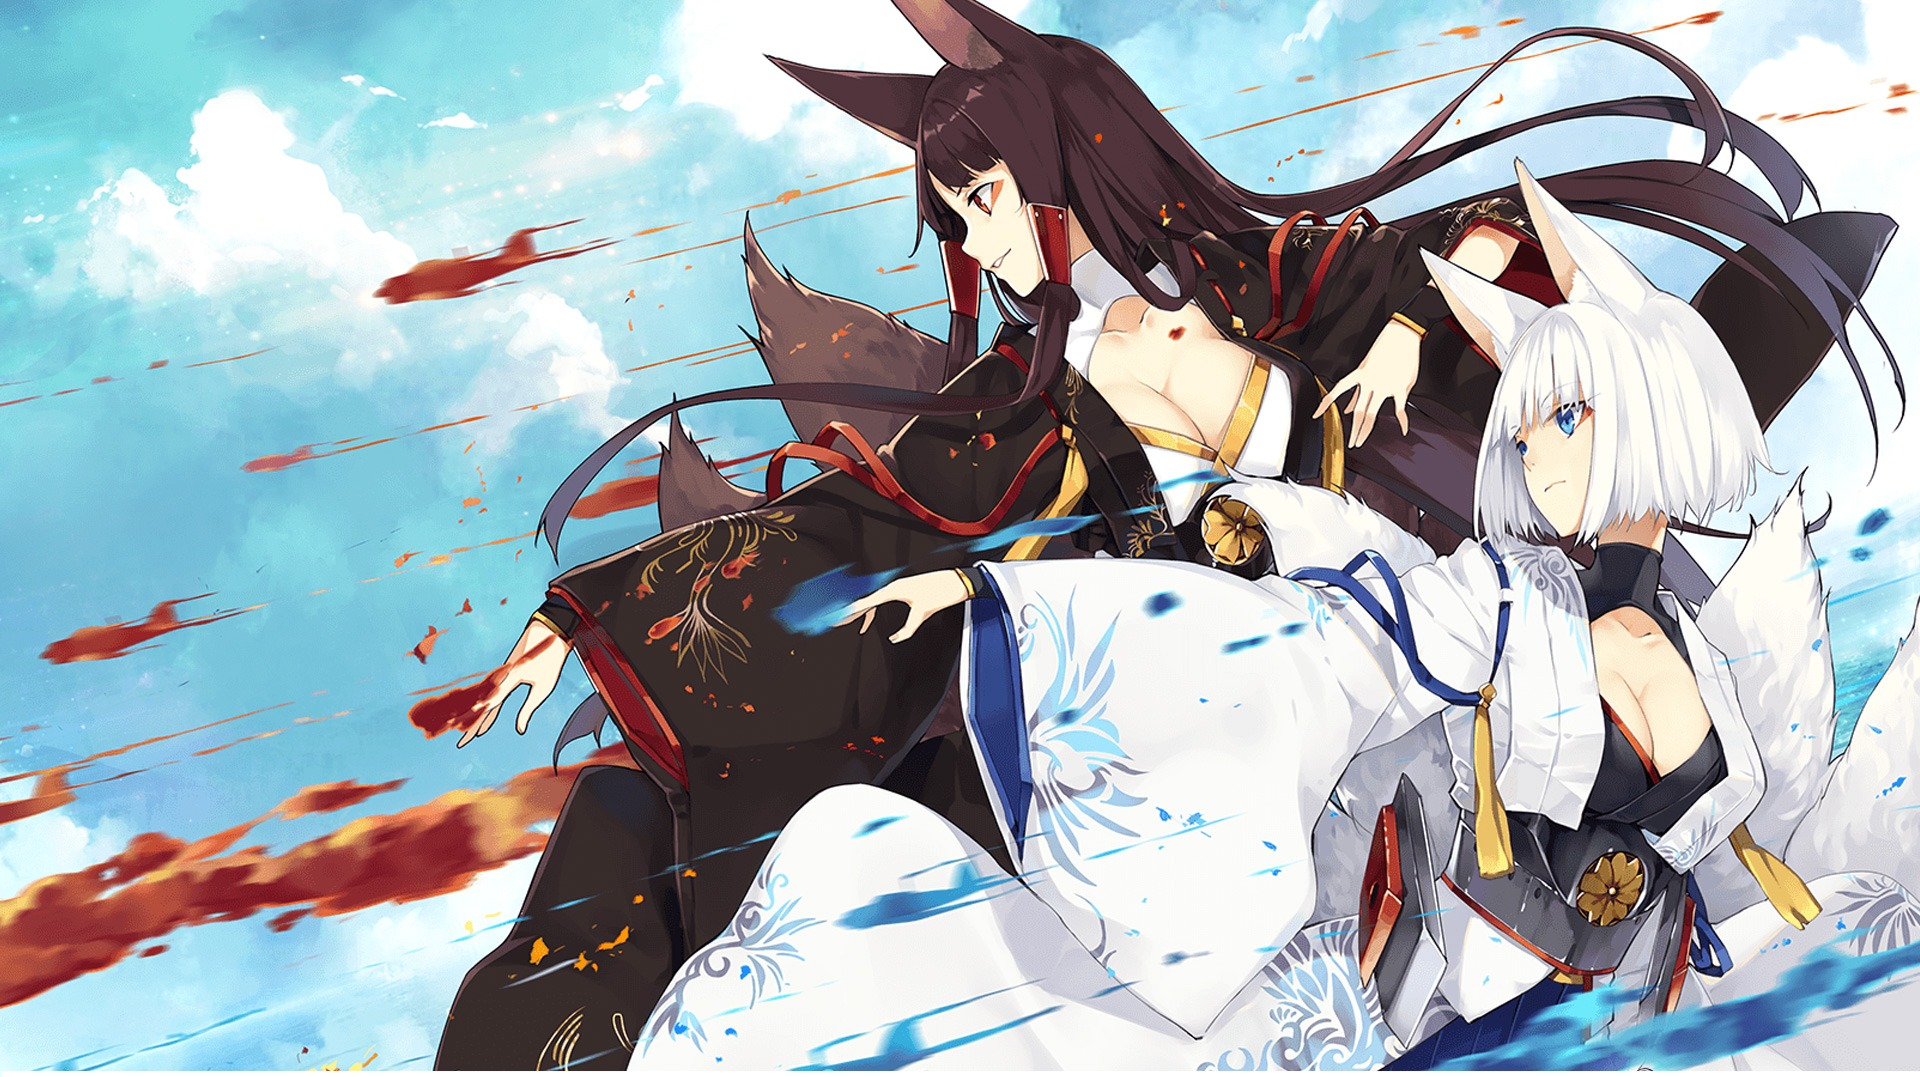 Mobile Game Azur Lane Is Getting New Content In Next Update, Royal Bikini Skin And A Submarine Event